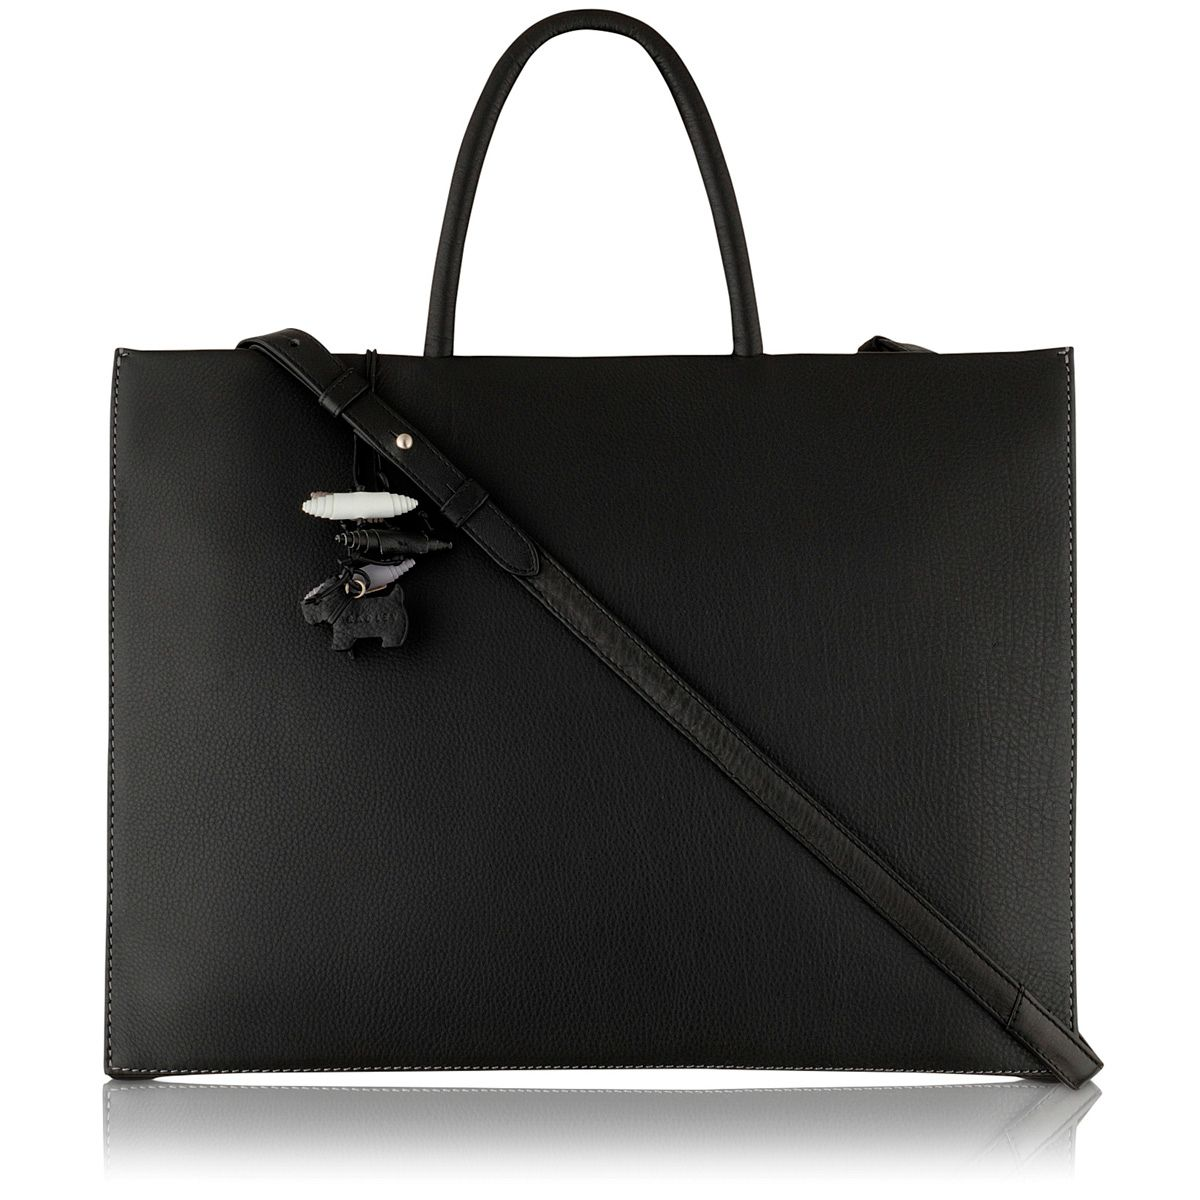 Broad large black leather work bag